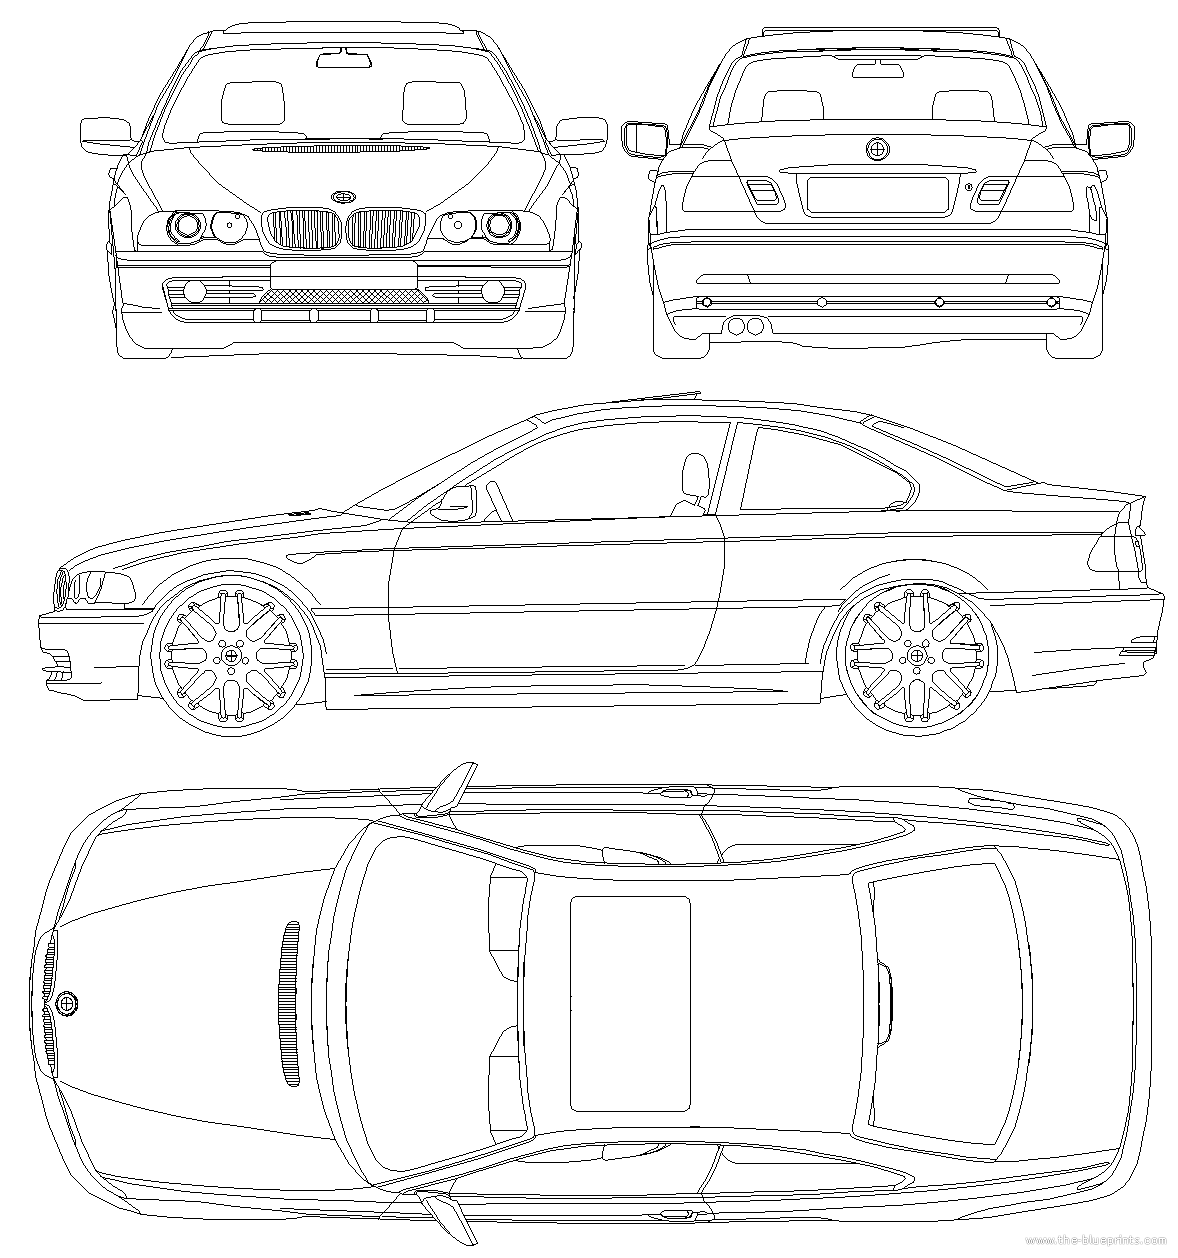 blueprints  u0026gt  cars  u0026gt  bmw  u0026gt  bmw 3